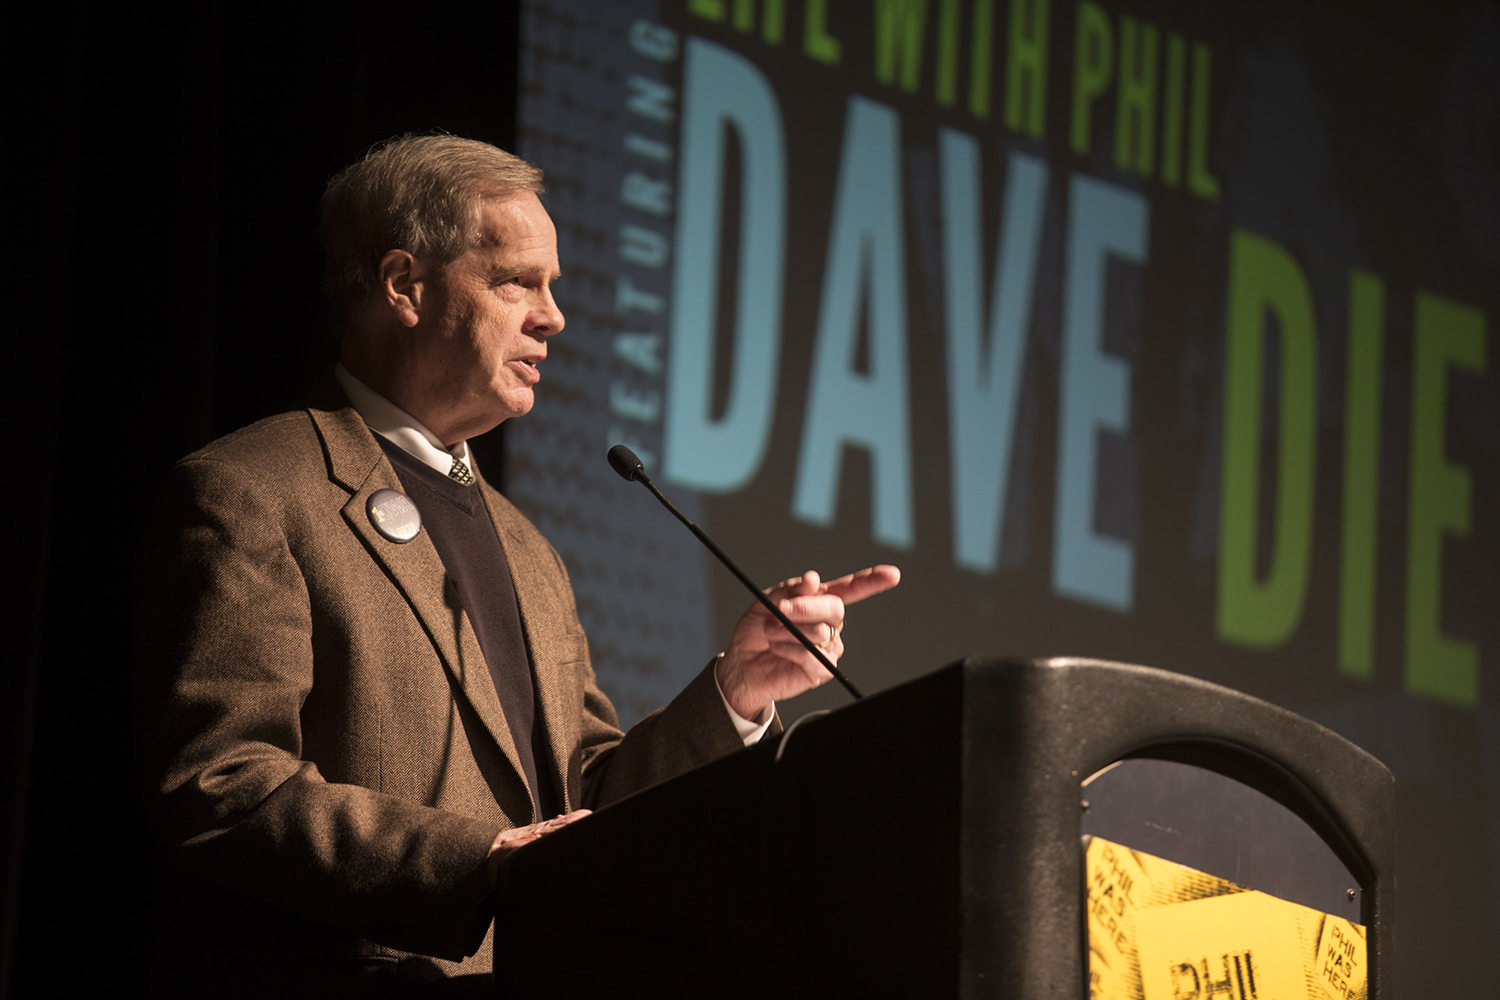 Iowa alum Dave Dierks delivers a talk entitled